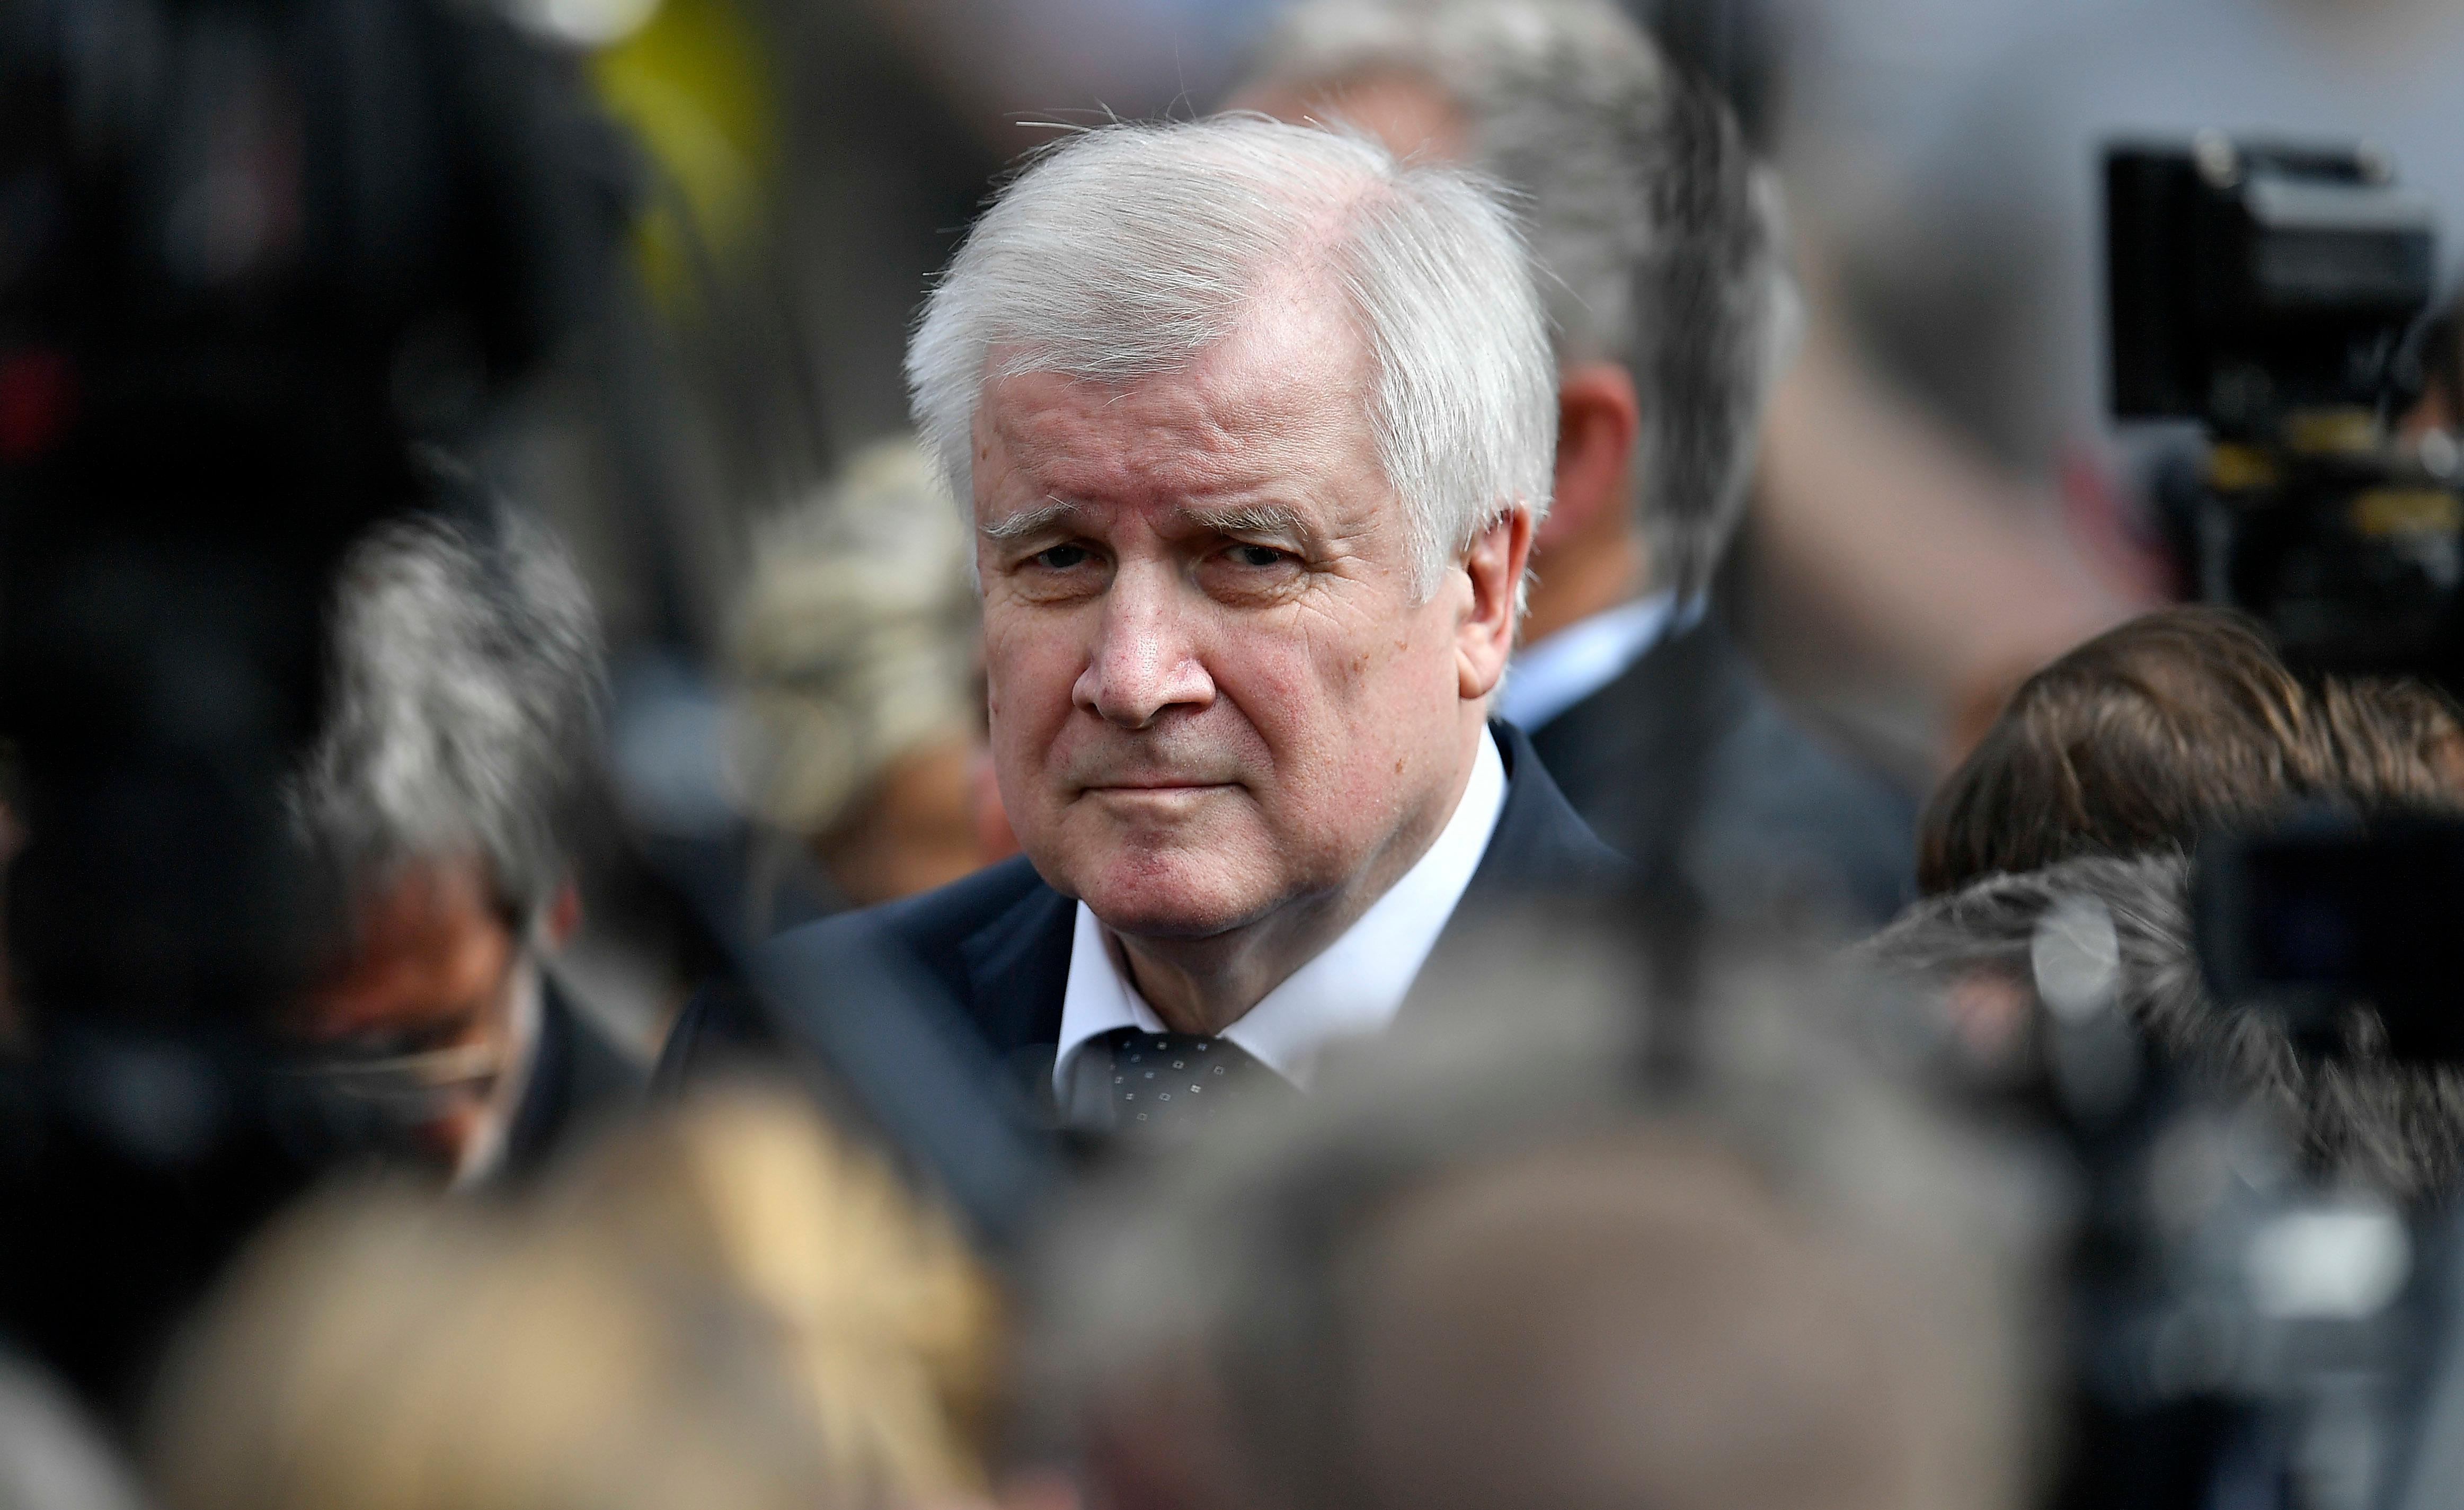 German interior minister Horst Seehofer visits the place in Muenster, Germany, Sunday, April 8, 2018 where a vehicle crashed into a crowd yesterday. A van crashed into people drinking outside a popular bar Saturday in the German city of Muenster, killing two people and injuring 20 others before the driver of the vehicle shot and killed himself inside it, police said. (AP Photo/Martin Meissner)